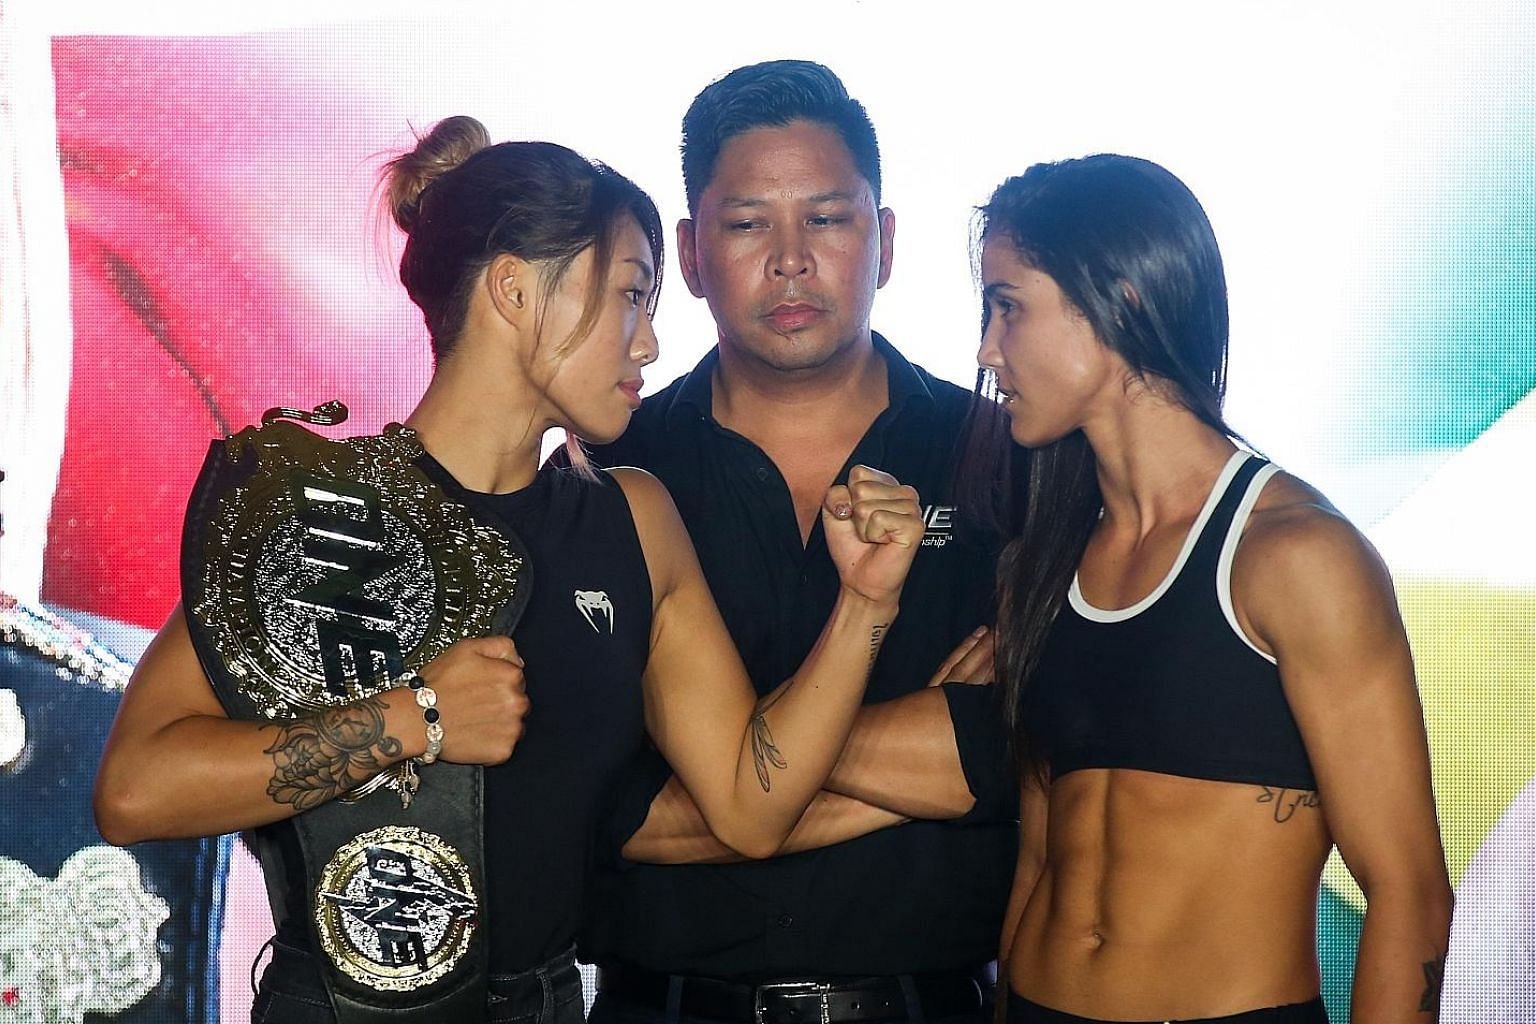 With her championship belt slung over her shoulder, Angela Lee (left) faces off against Istela Nunes (right). Lee said her talent as a fast starter will be crucial in winning today.